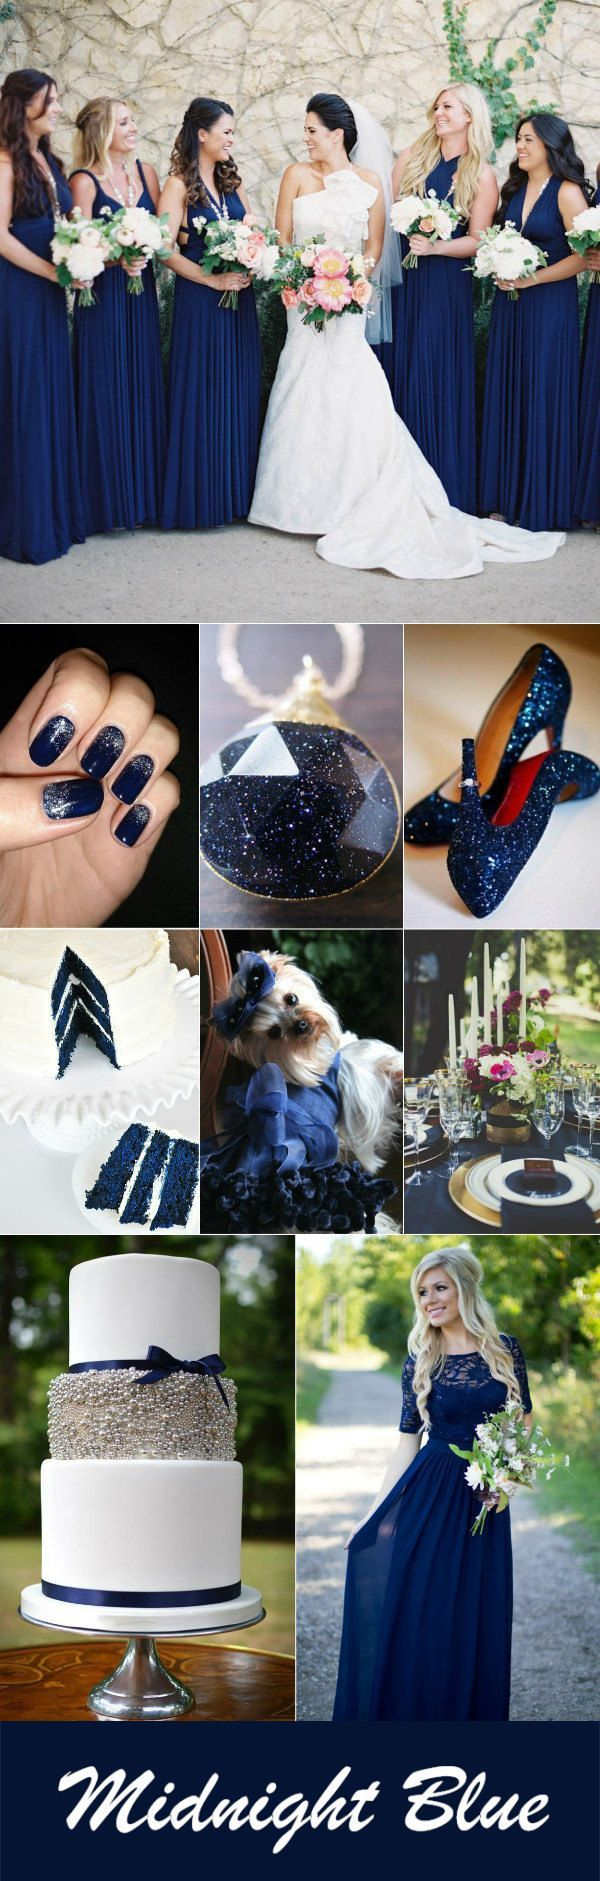 Navy blue dress shoes for wedding  stunning midnight blue wedding color inspiration  Wedding Shoes